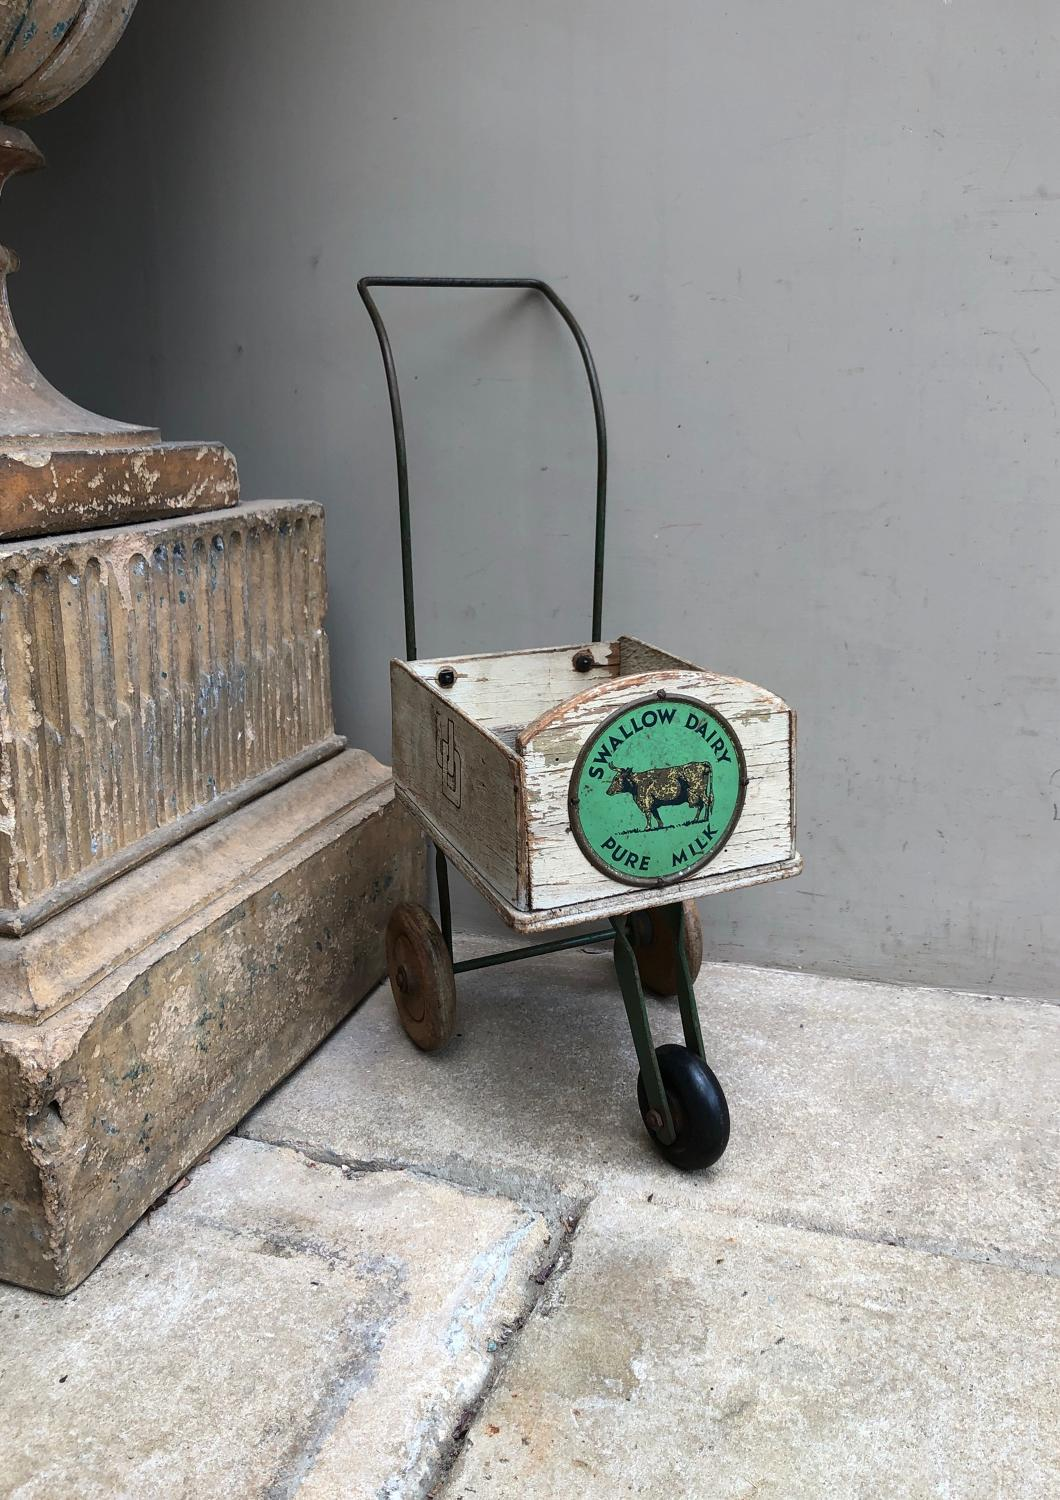 1940s Display Milk Cart - Swallow Dairy Pure Milk